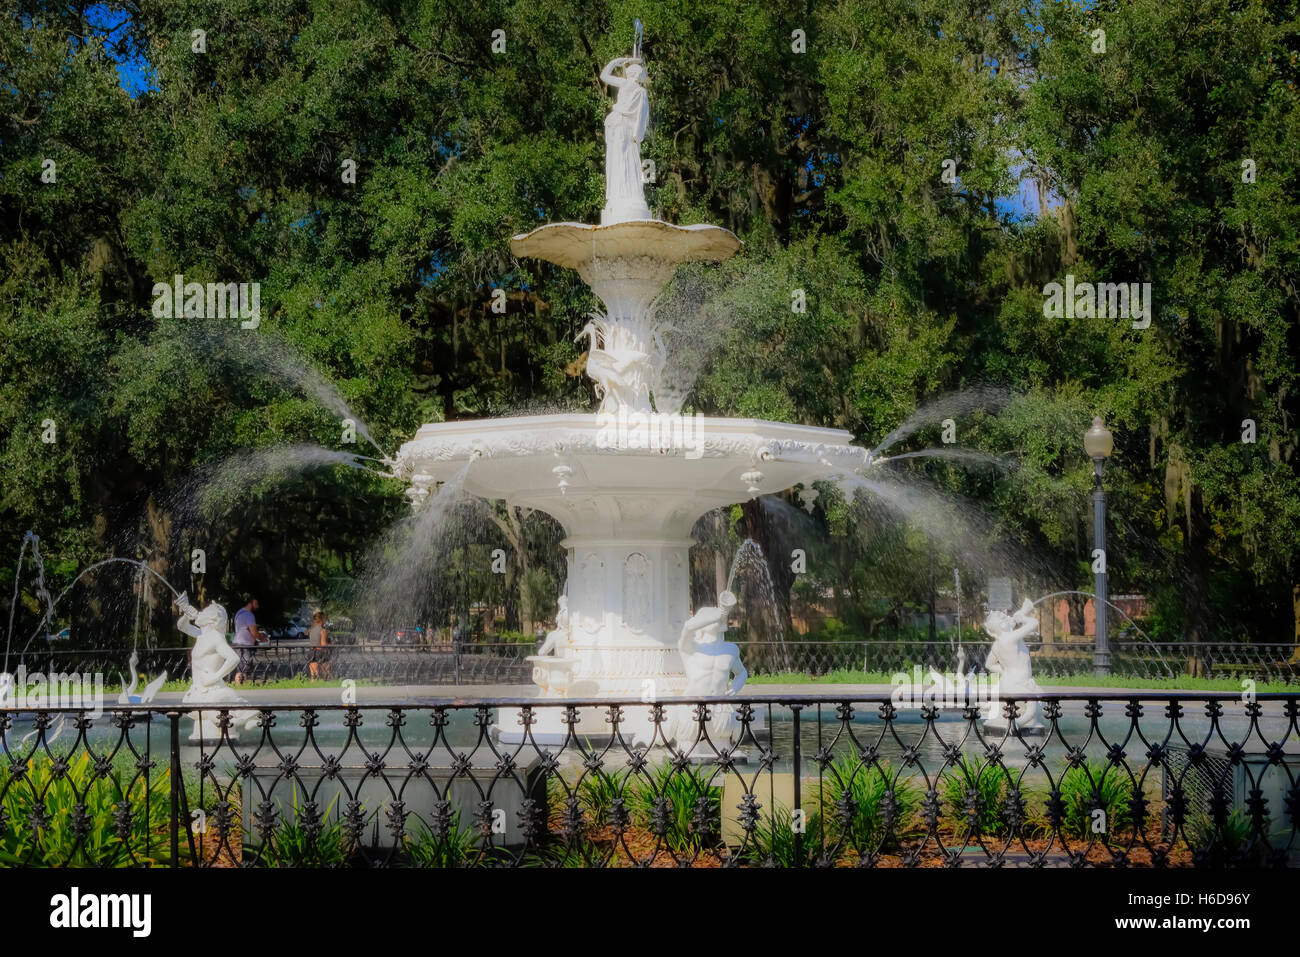 The Parisian inspired and fanciful statuary water fountain landmark in Forsyth Park in historical downtown Savannah, - Stock Image